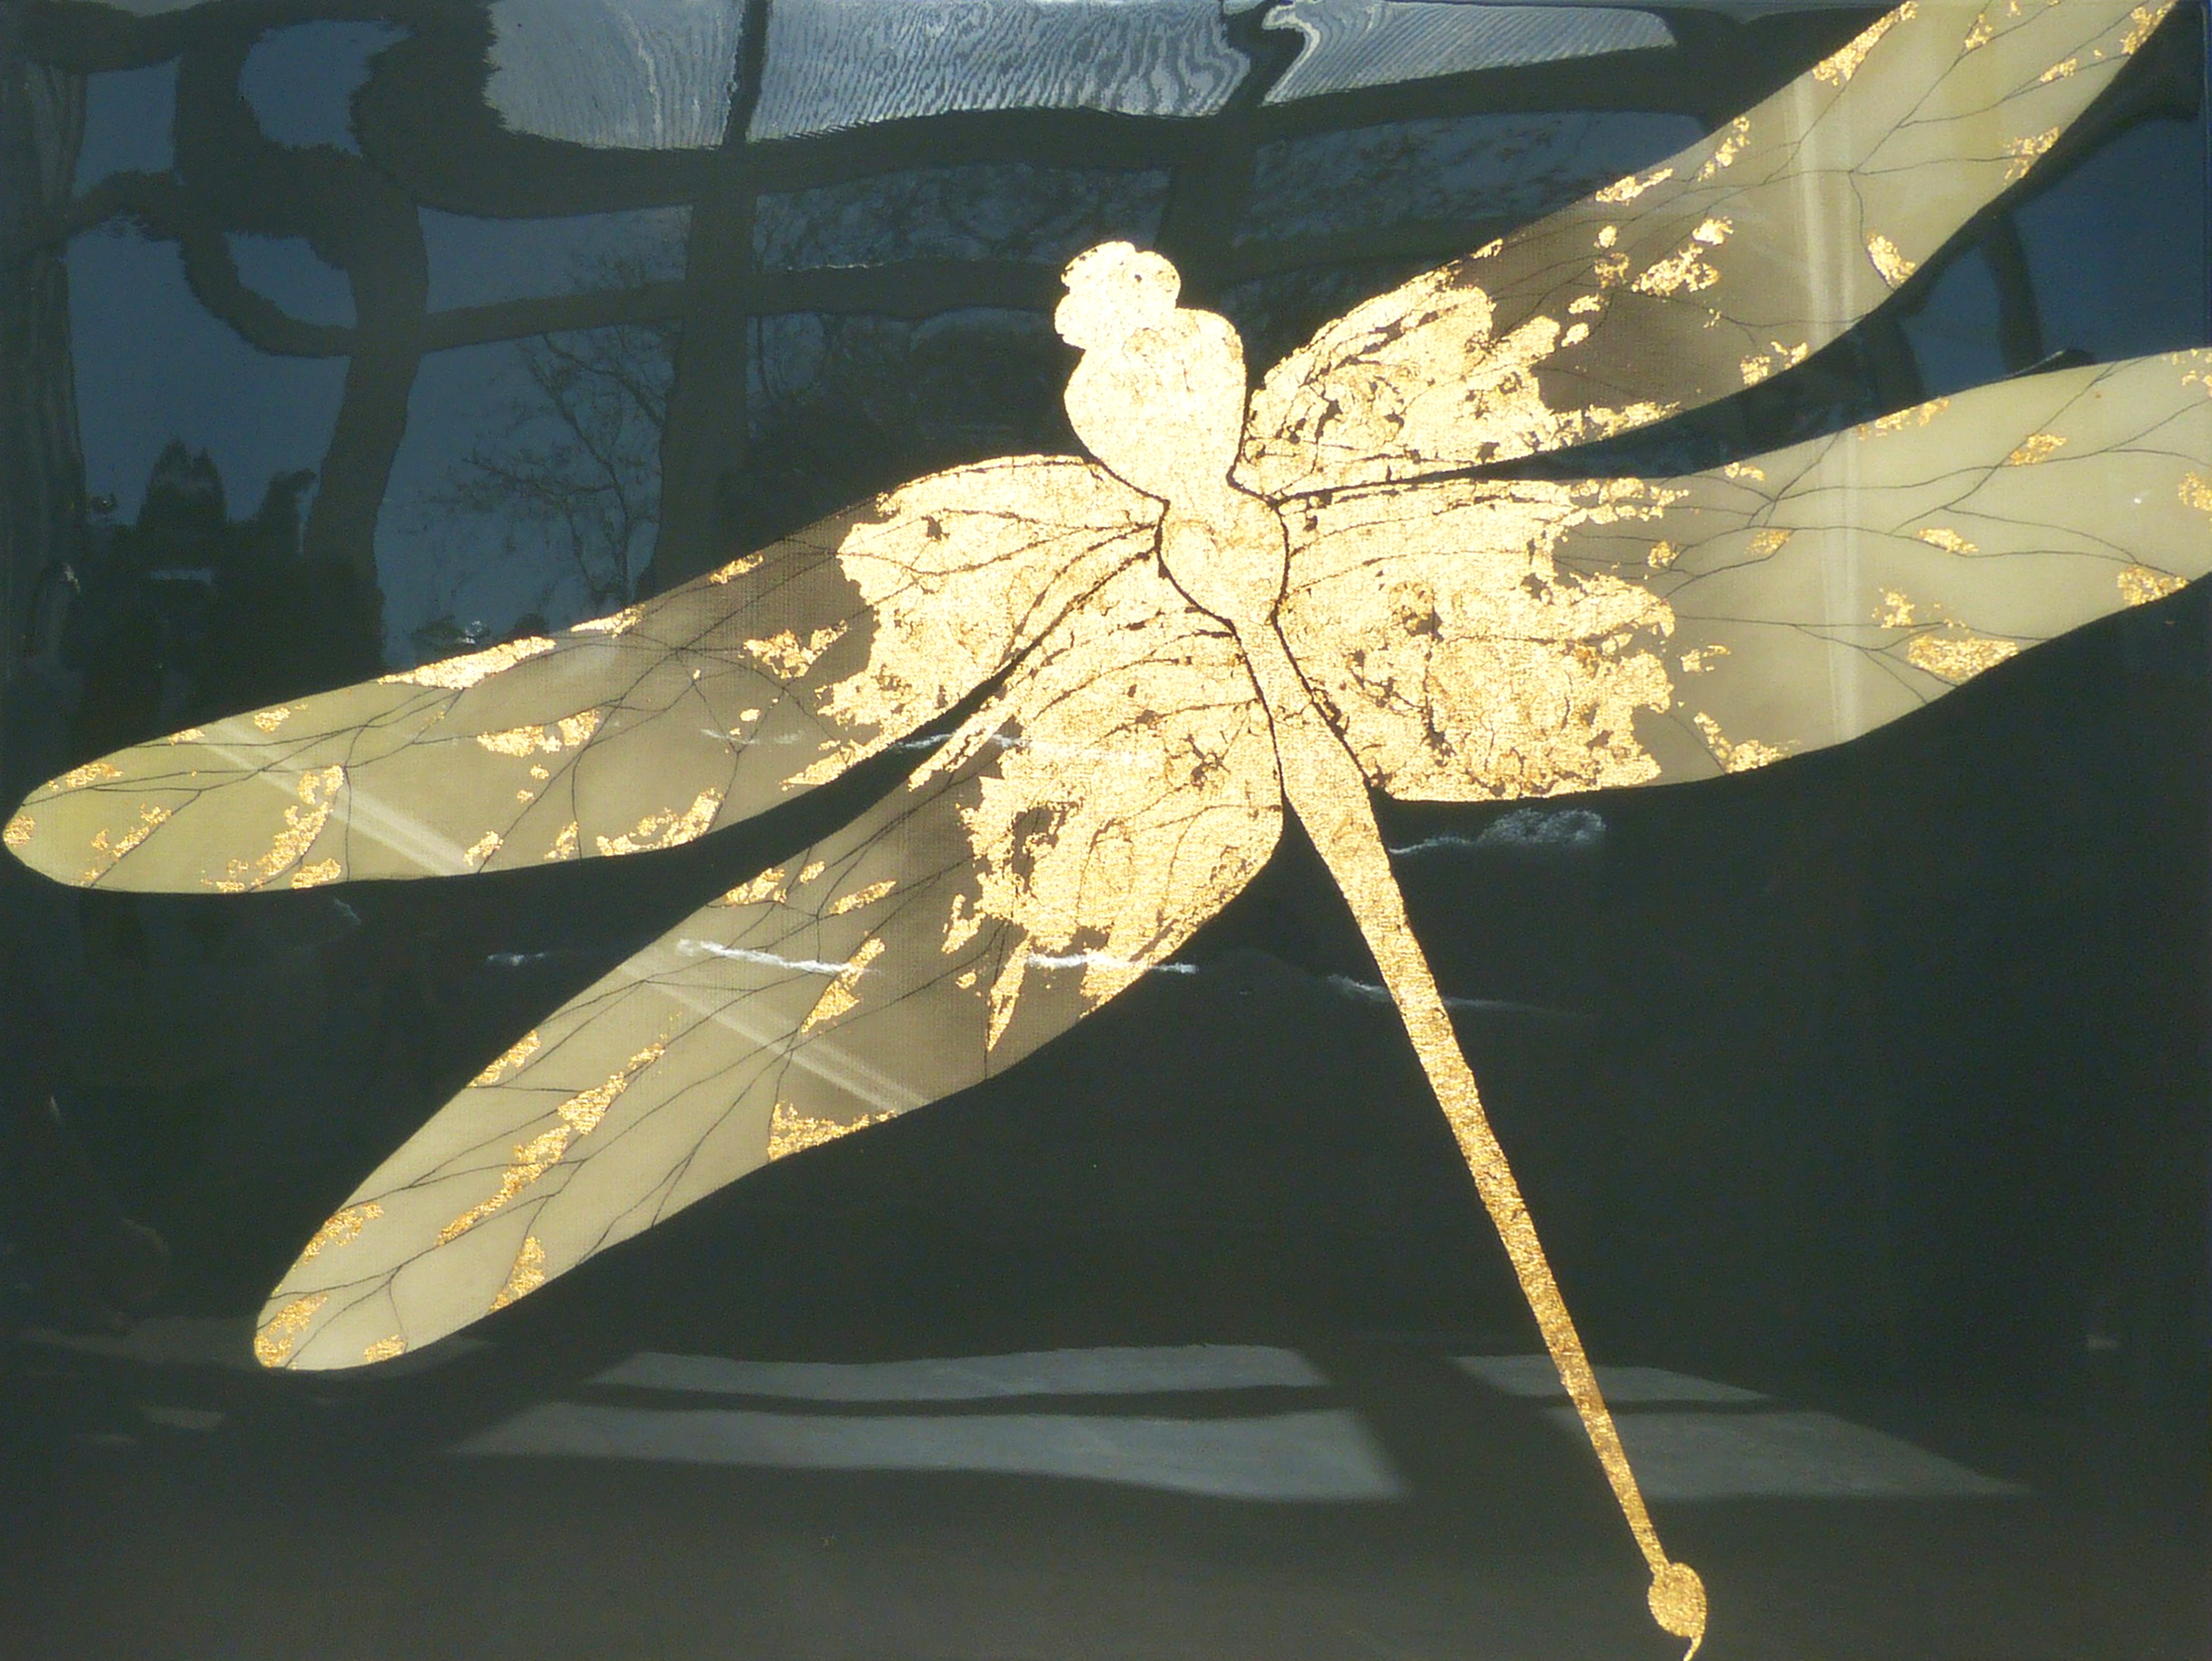 LUX DRAGONFLY  102x76cm | oil on canvas with gold leaf and resin | £1,700.00 | SOLD